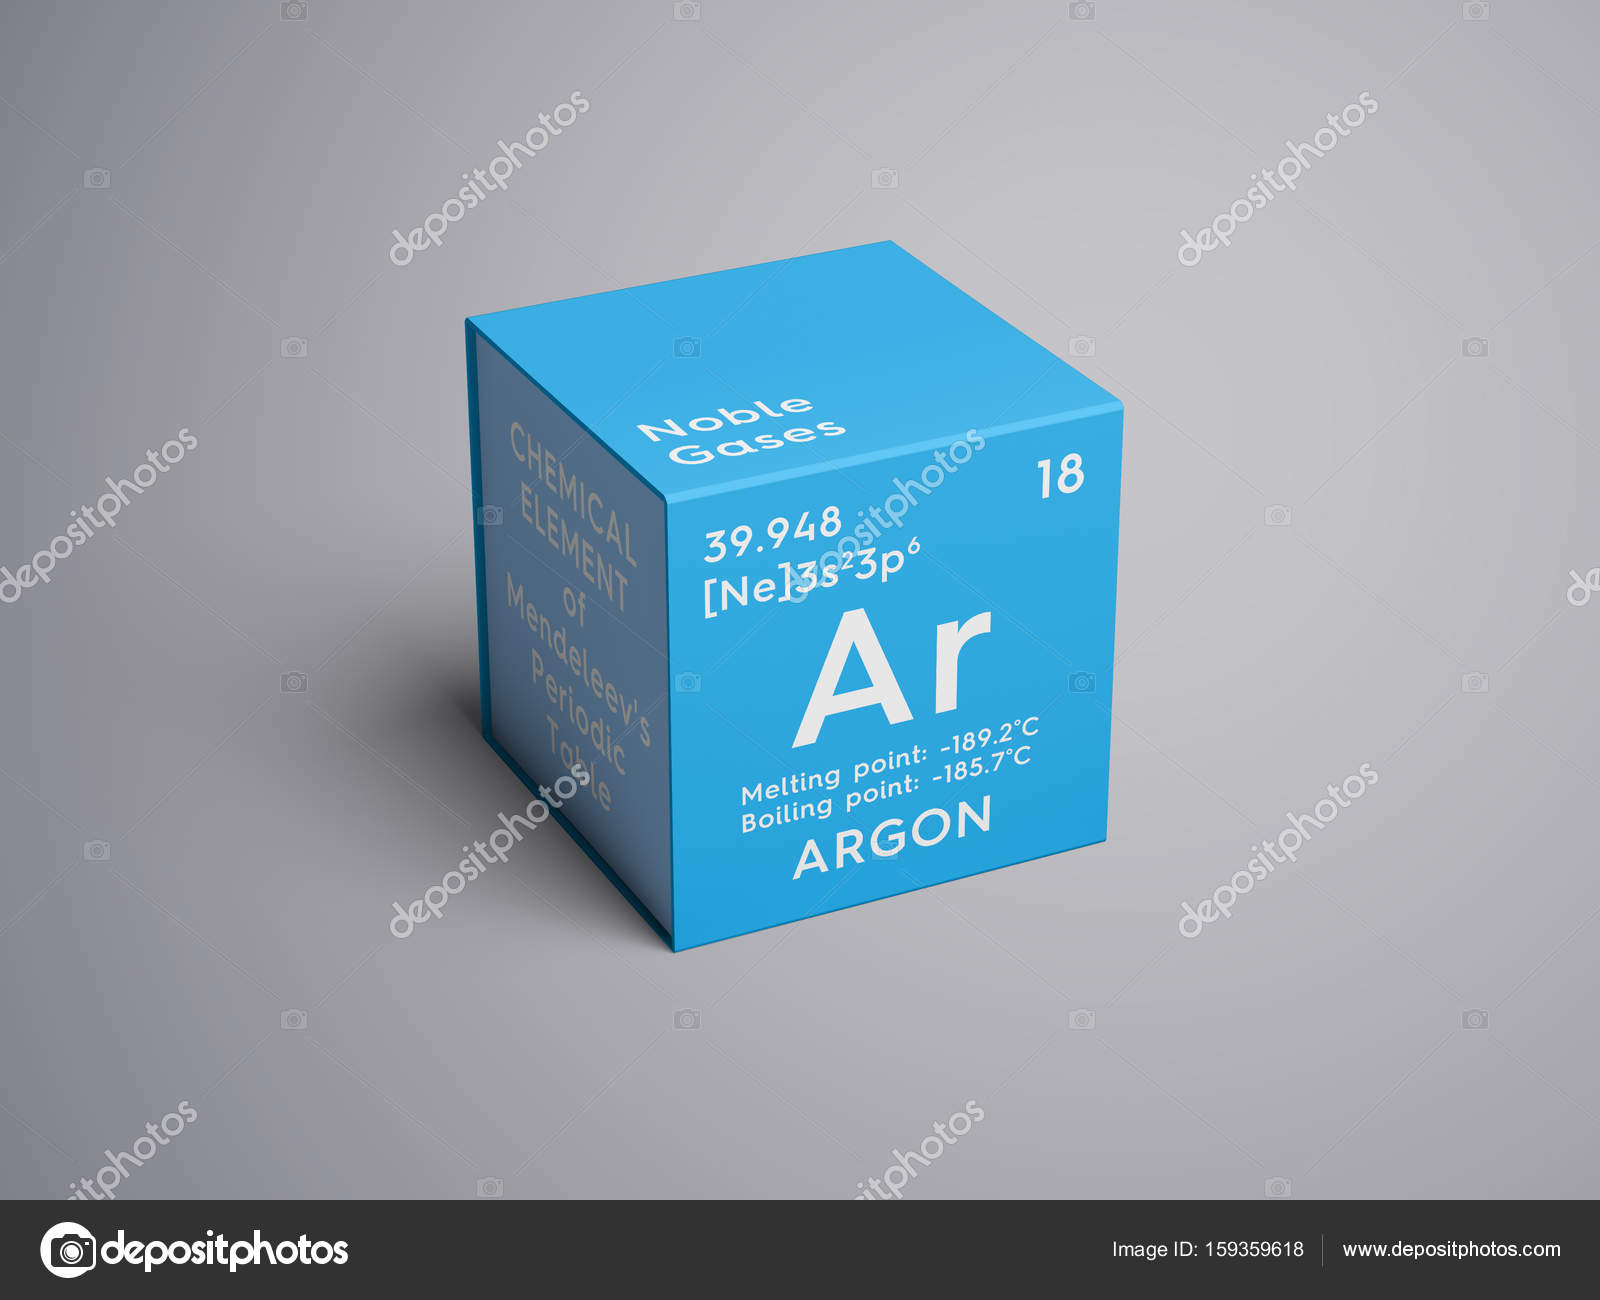 Argon noble gases chemical element of mendeleevs periodic table argon noble gases chemical element of mendeleevs periodic table argon in square cube creative concept photo by sanches812 gamestrikefo Choice Image